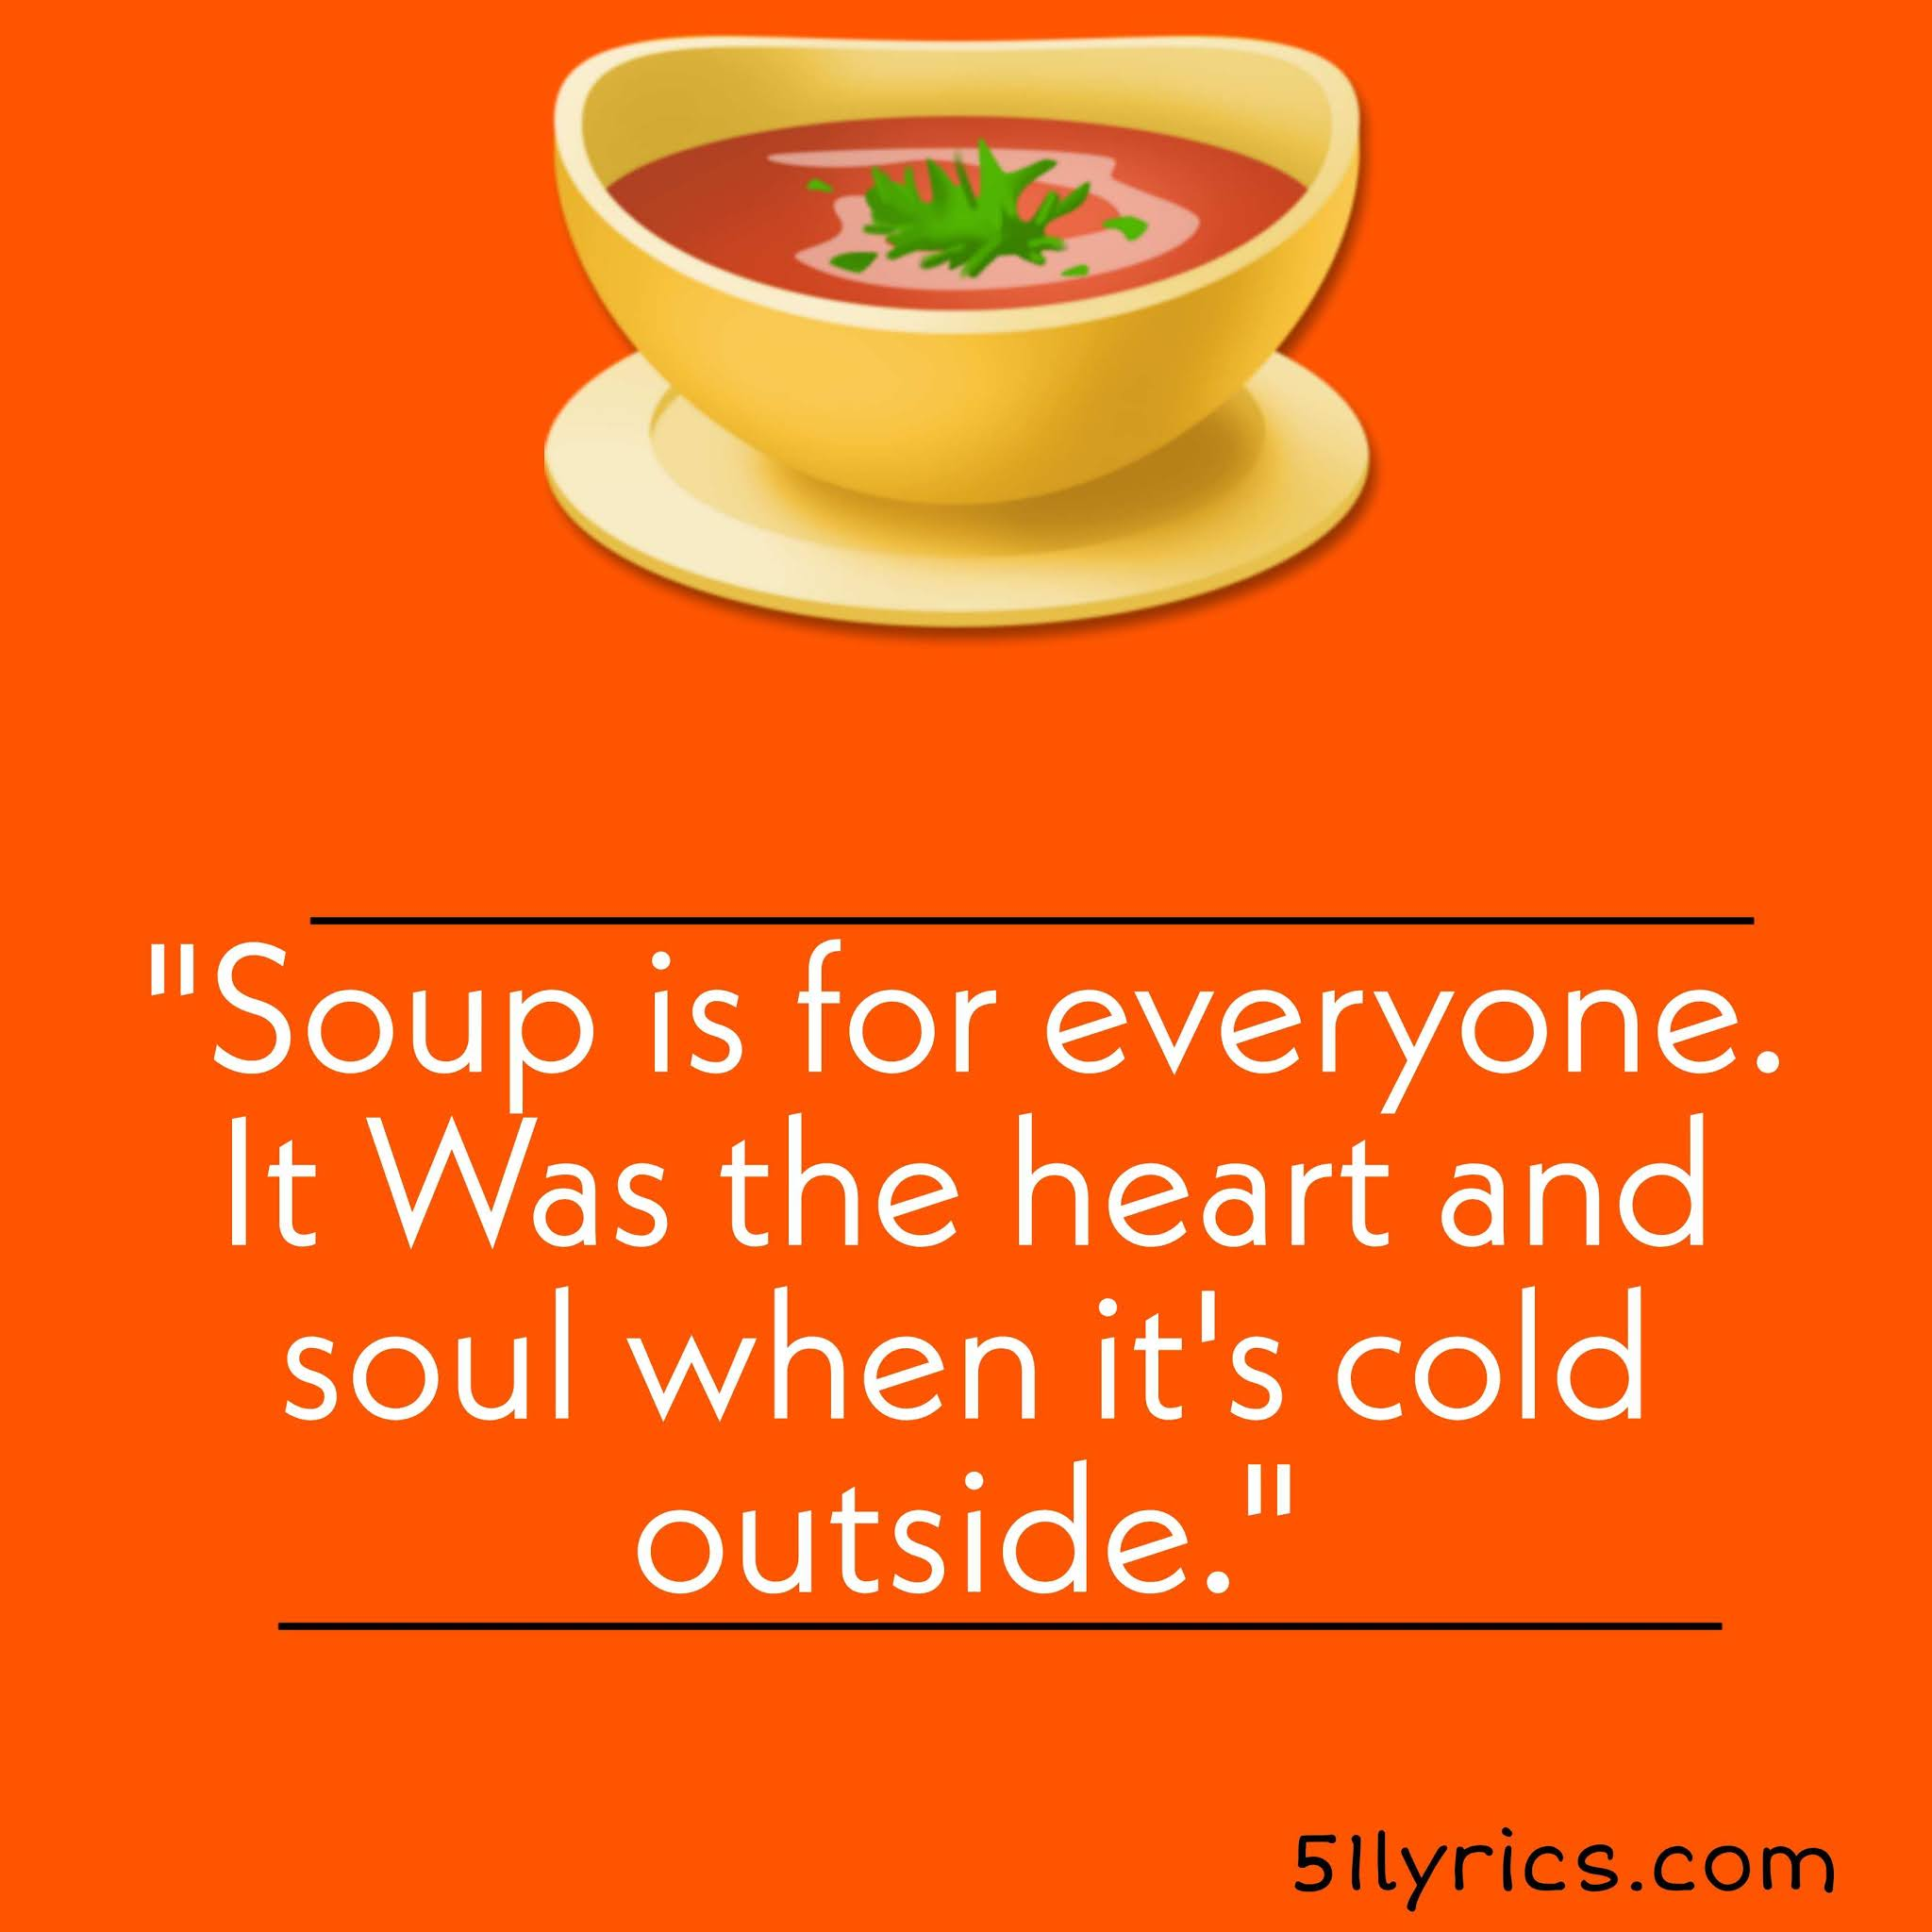 Tomato Soup Captions For Instagram